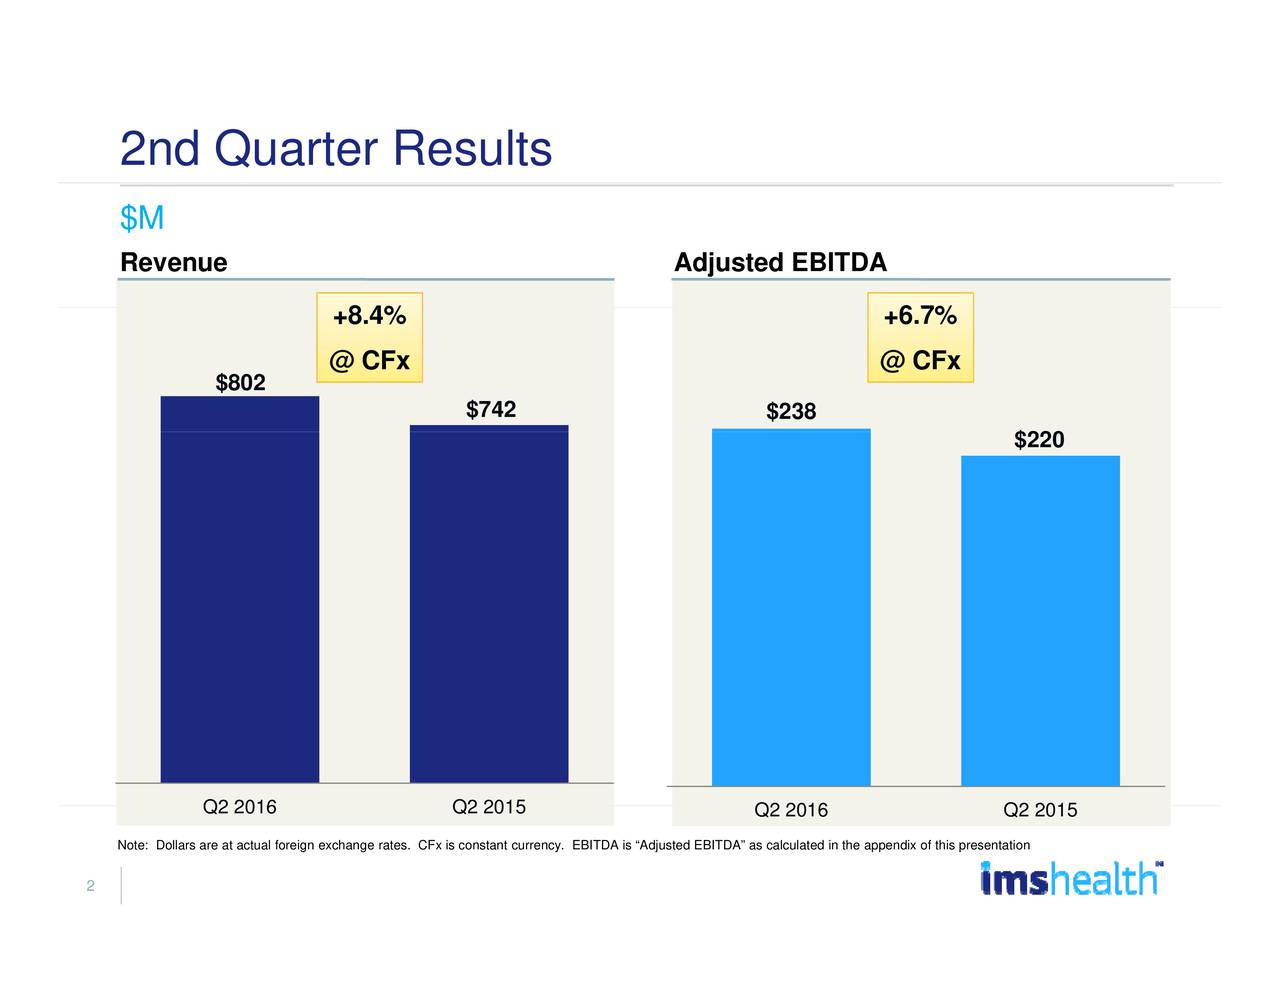 $220 Q2 2015 67% + @ CFx e appendix of this presentation 2016 $238 Q2 2016 Adjusted EBITDA usted EBITDA as calculated in th $742 onstant currency. EBITDA is Adj Q2 2015 .% +4% @ CFx 2016 $802 Q2 2016 2nd $MQRuvanreter Results Note: Dollars are at actual foreign exchange rates. CFx is c 2